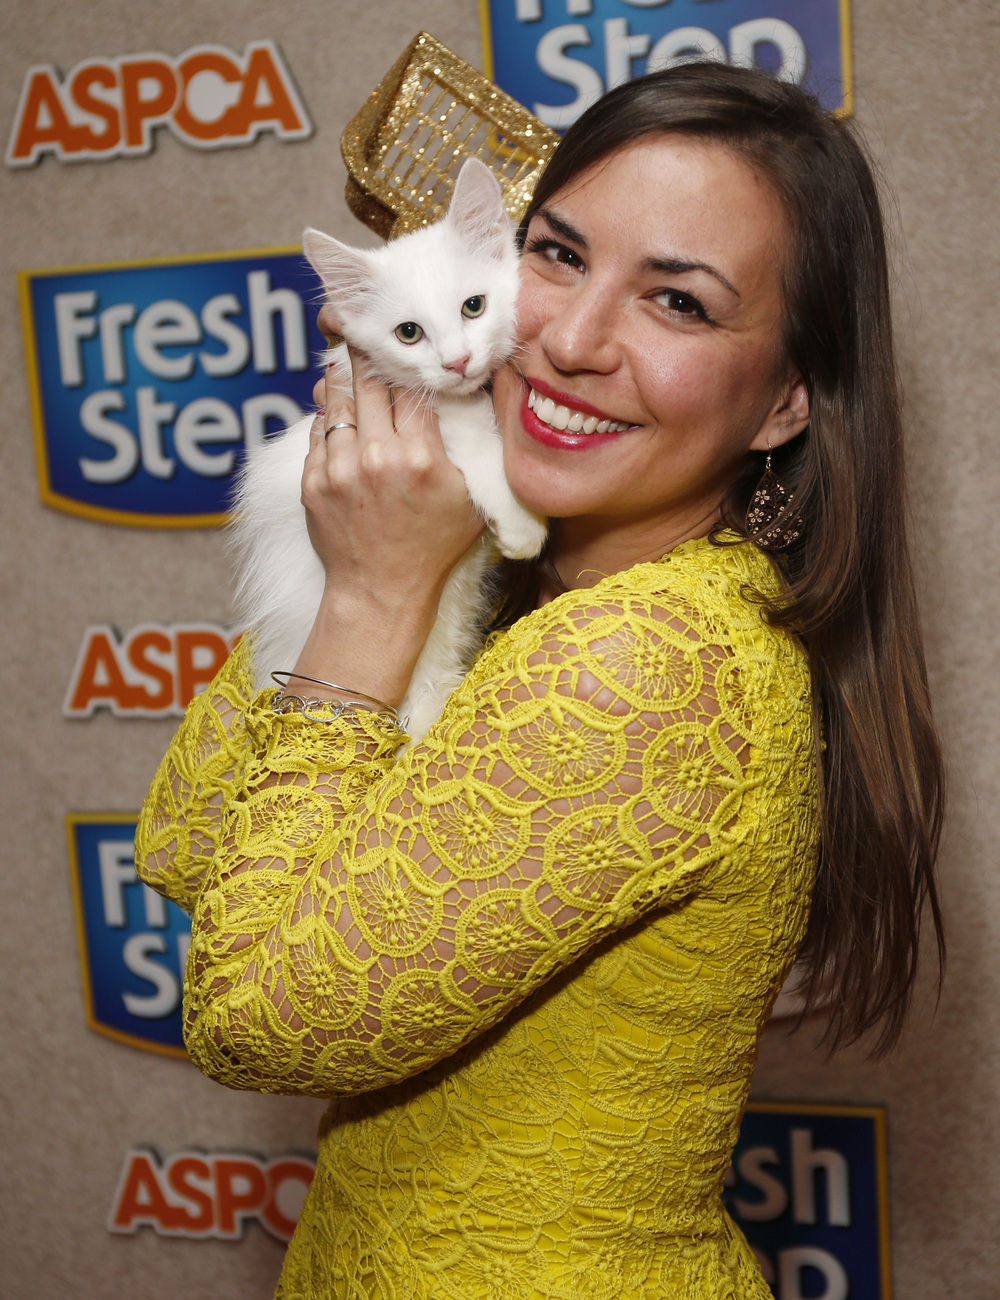 Alana Grelyak with Golden Litter Scoop and Kitten copy.jpg